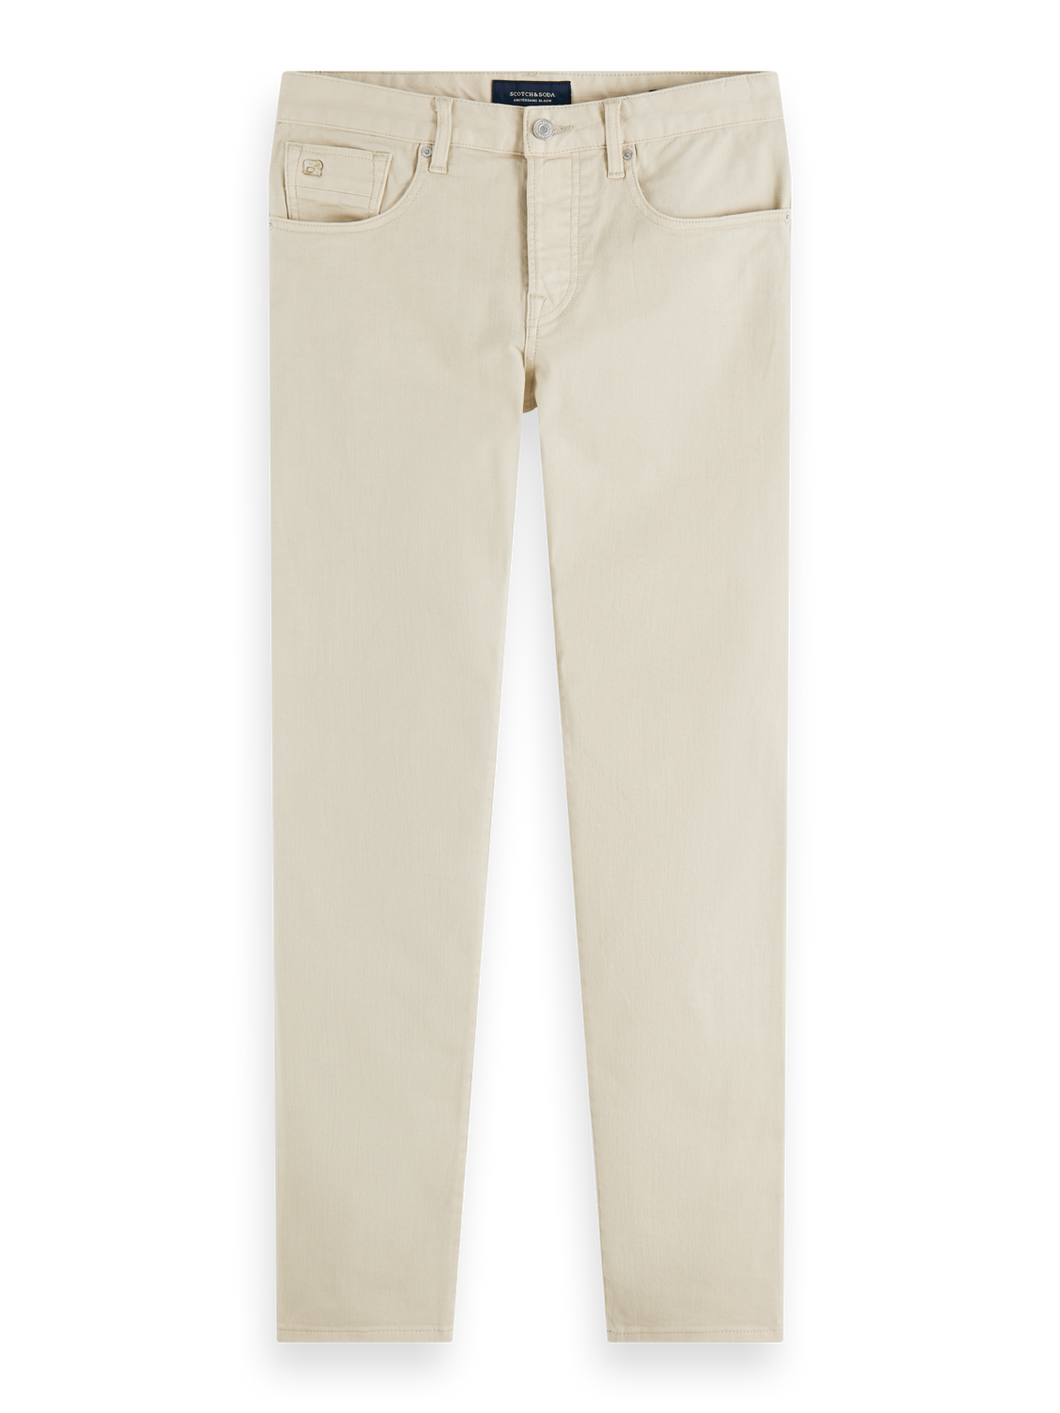 Scotch & Soda - Ralston Chino - Sand